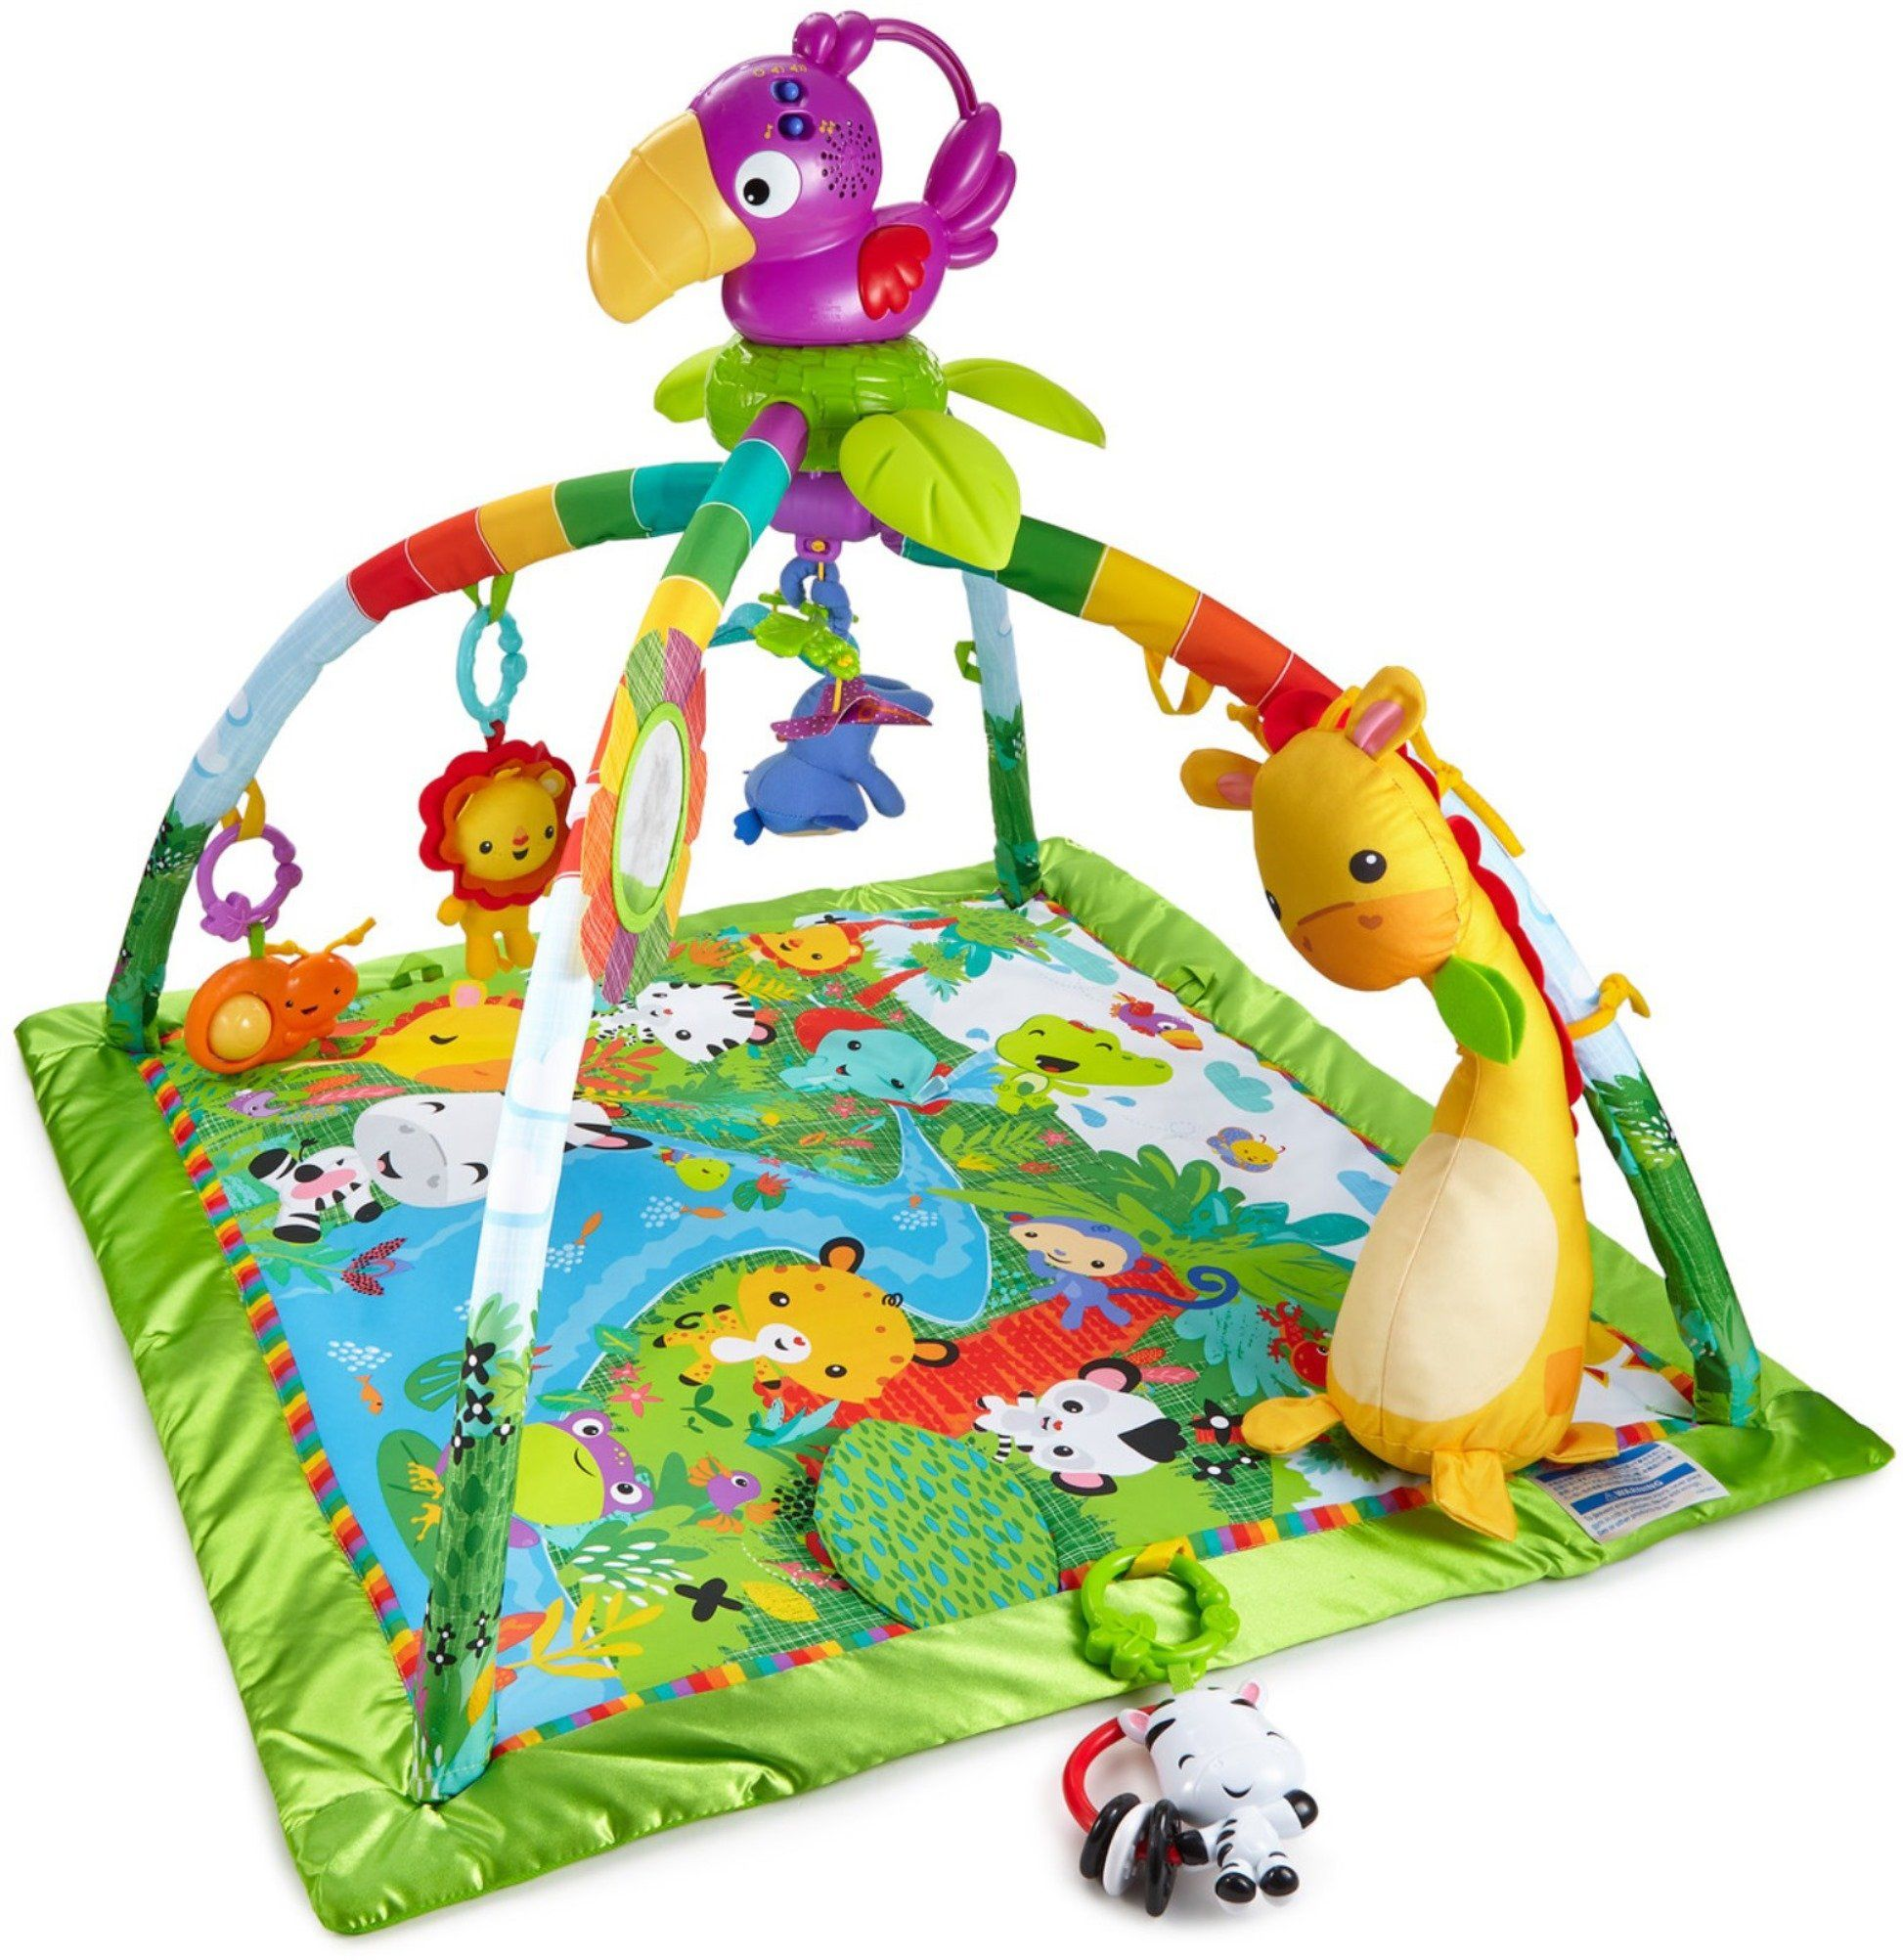 Fisher Price Music And Lights Deluxe Gym Rainforest Deluxe Newborn Gym With 10 Toys And Activities And A Fisher Price Baby Activity Center Rainforest Music